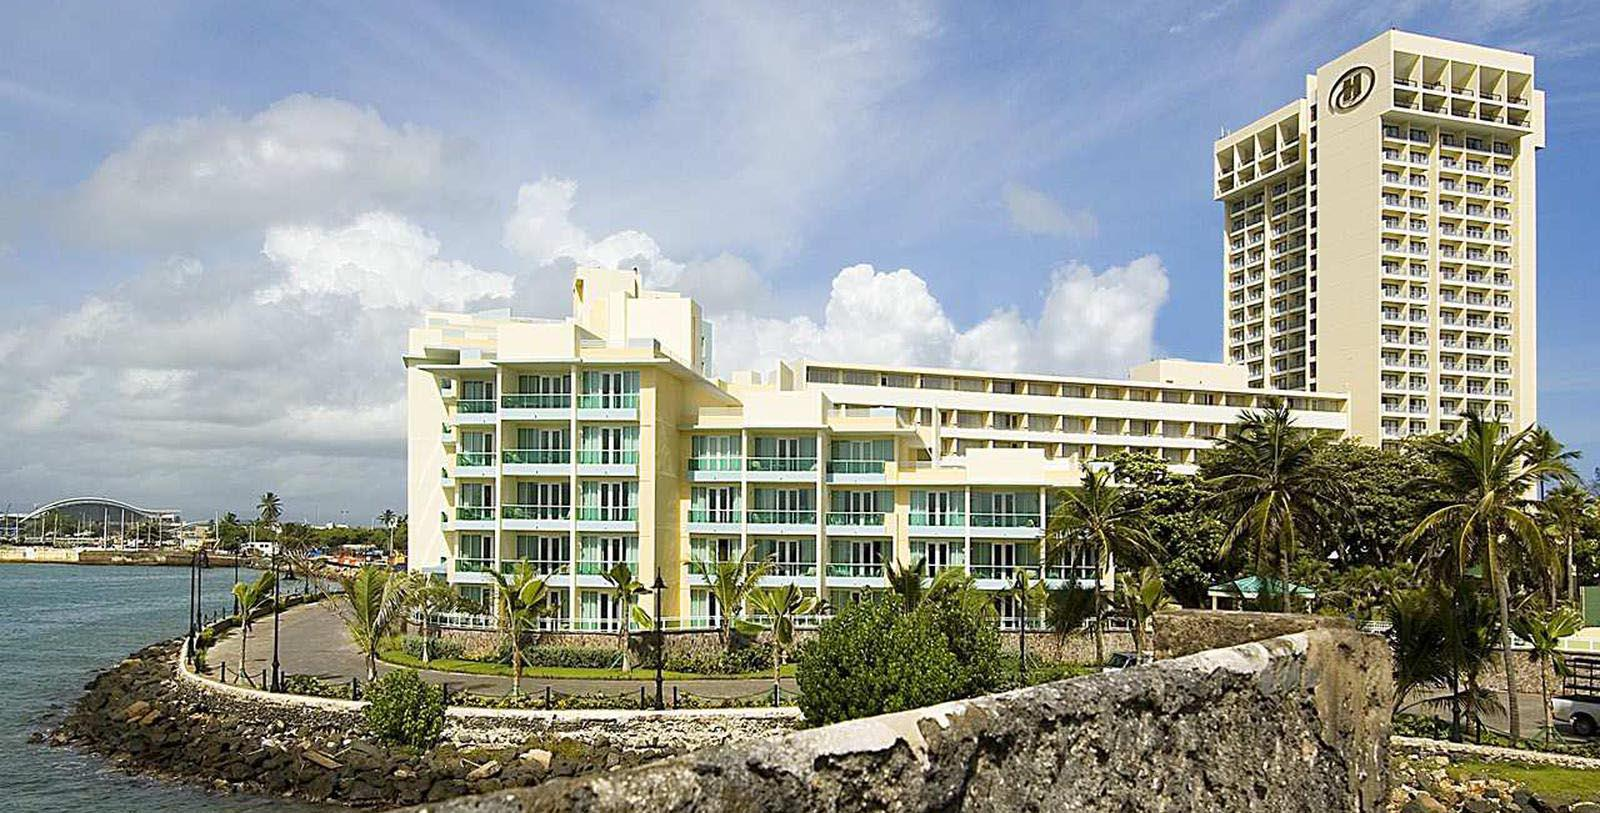 Image of Hotel Exterior at Caribe Hilton, 1949, Member of Historic Hotels of America, in San Juan, Puerto Rico, Overview